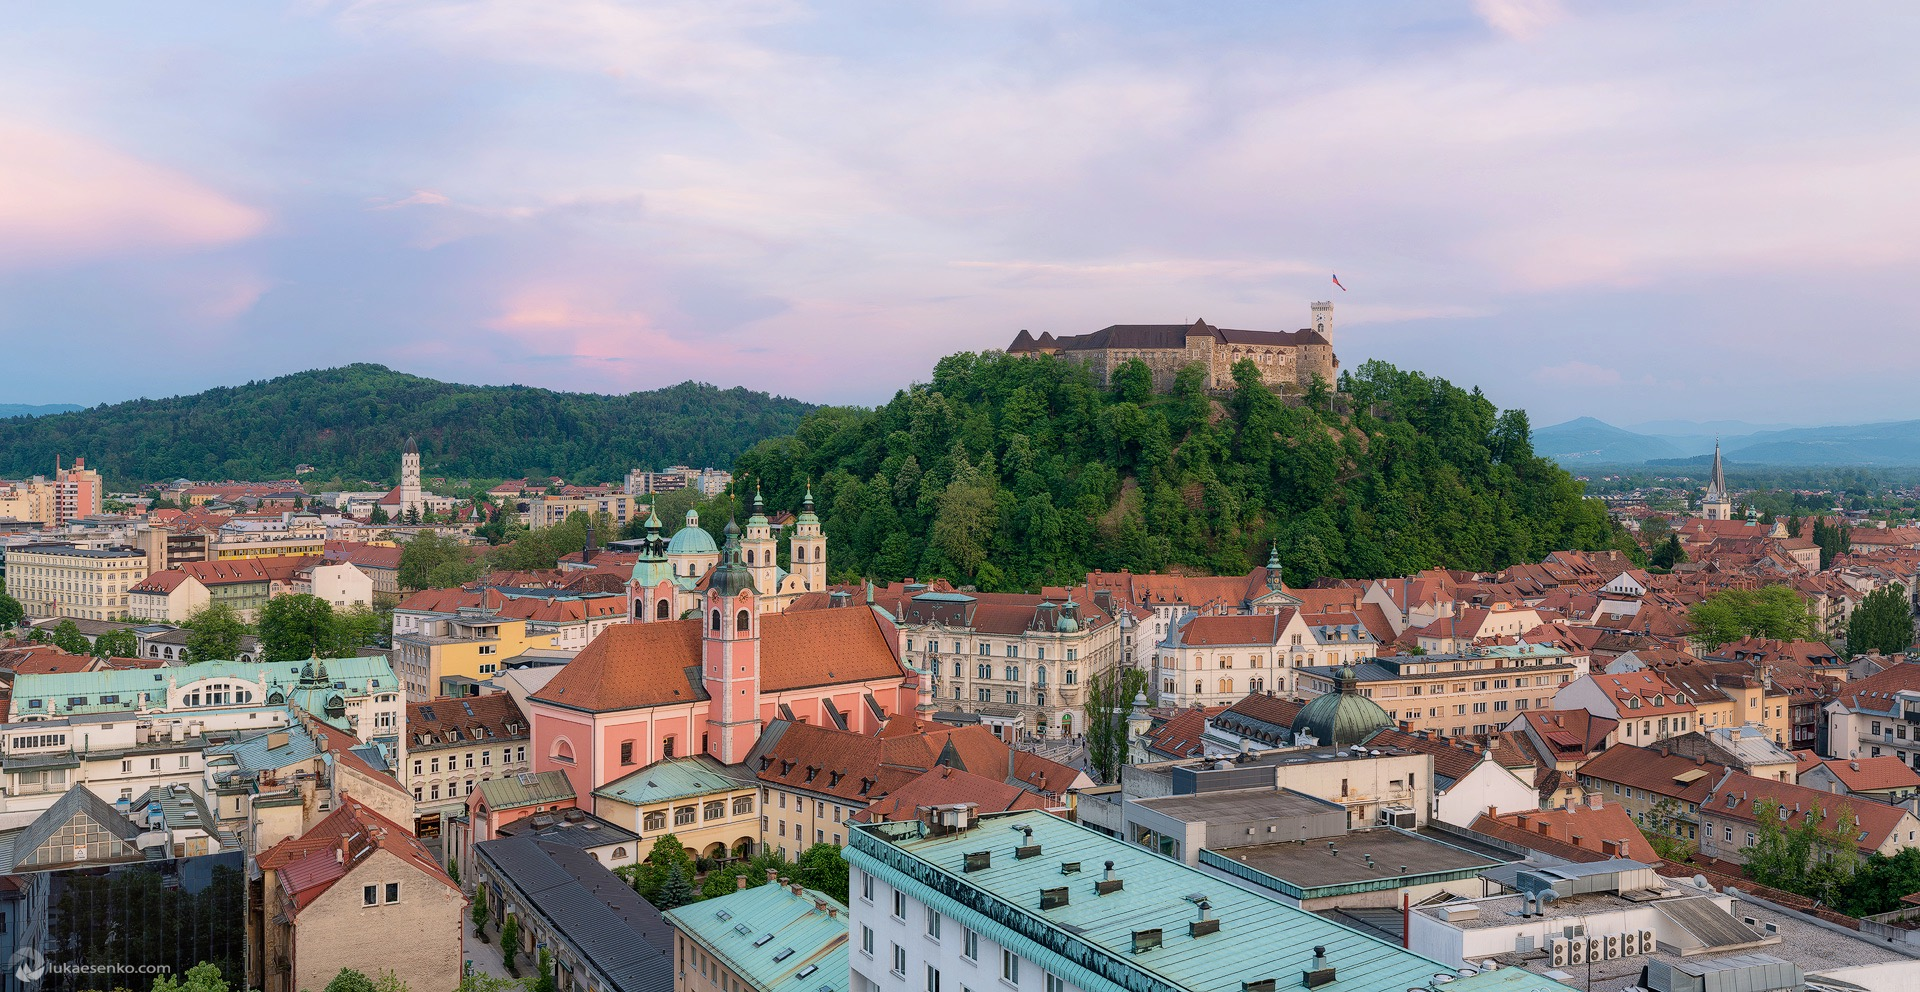 LJUBLJANA, THE SERENE CAPITAL